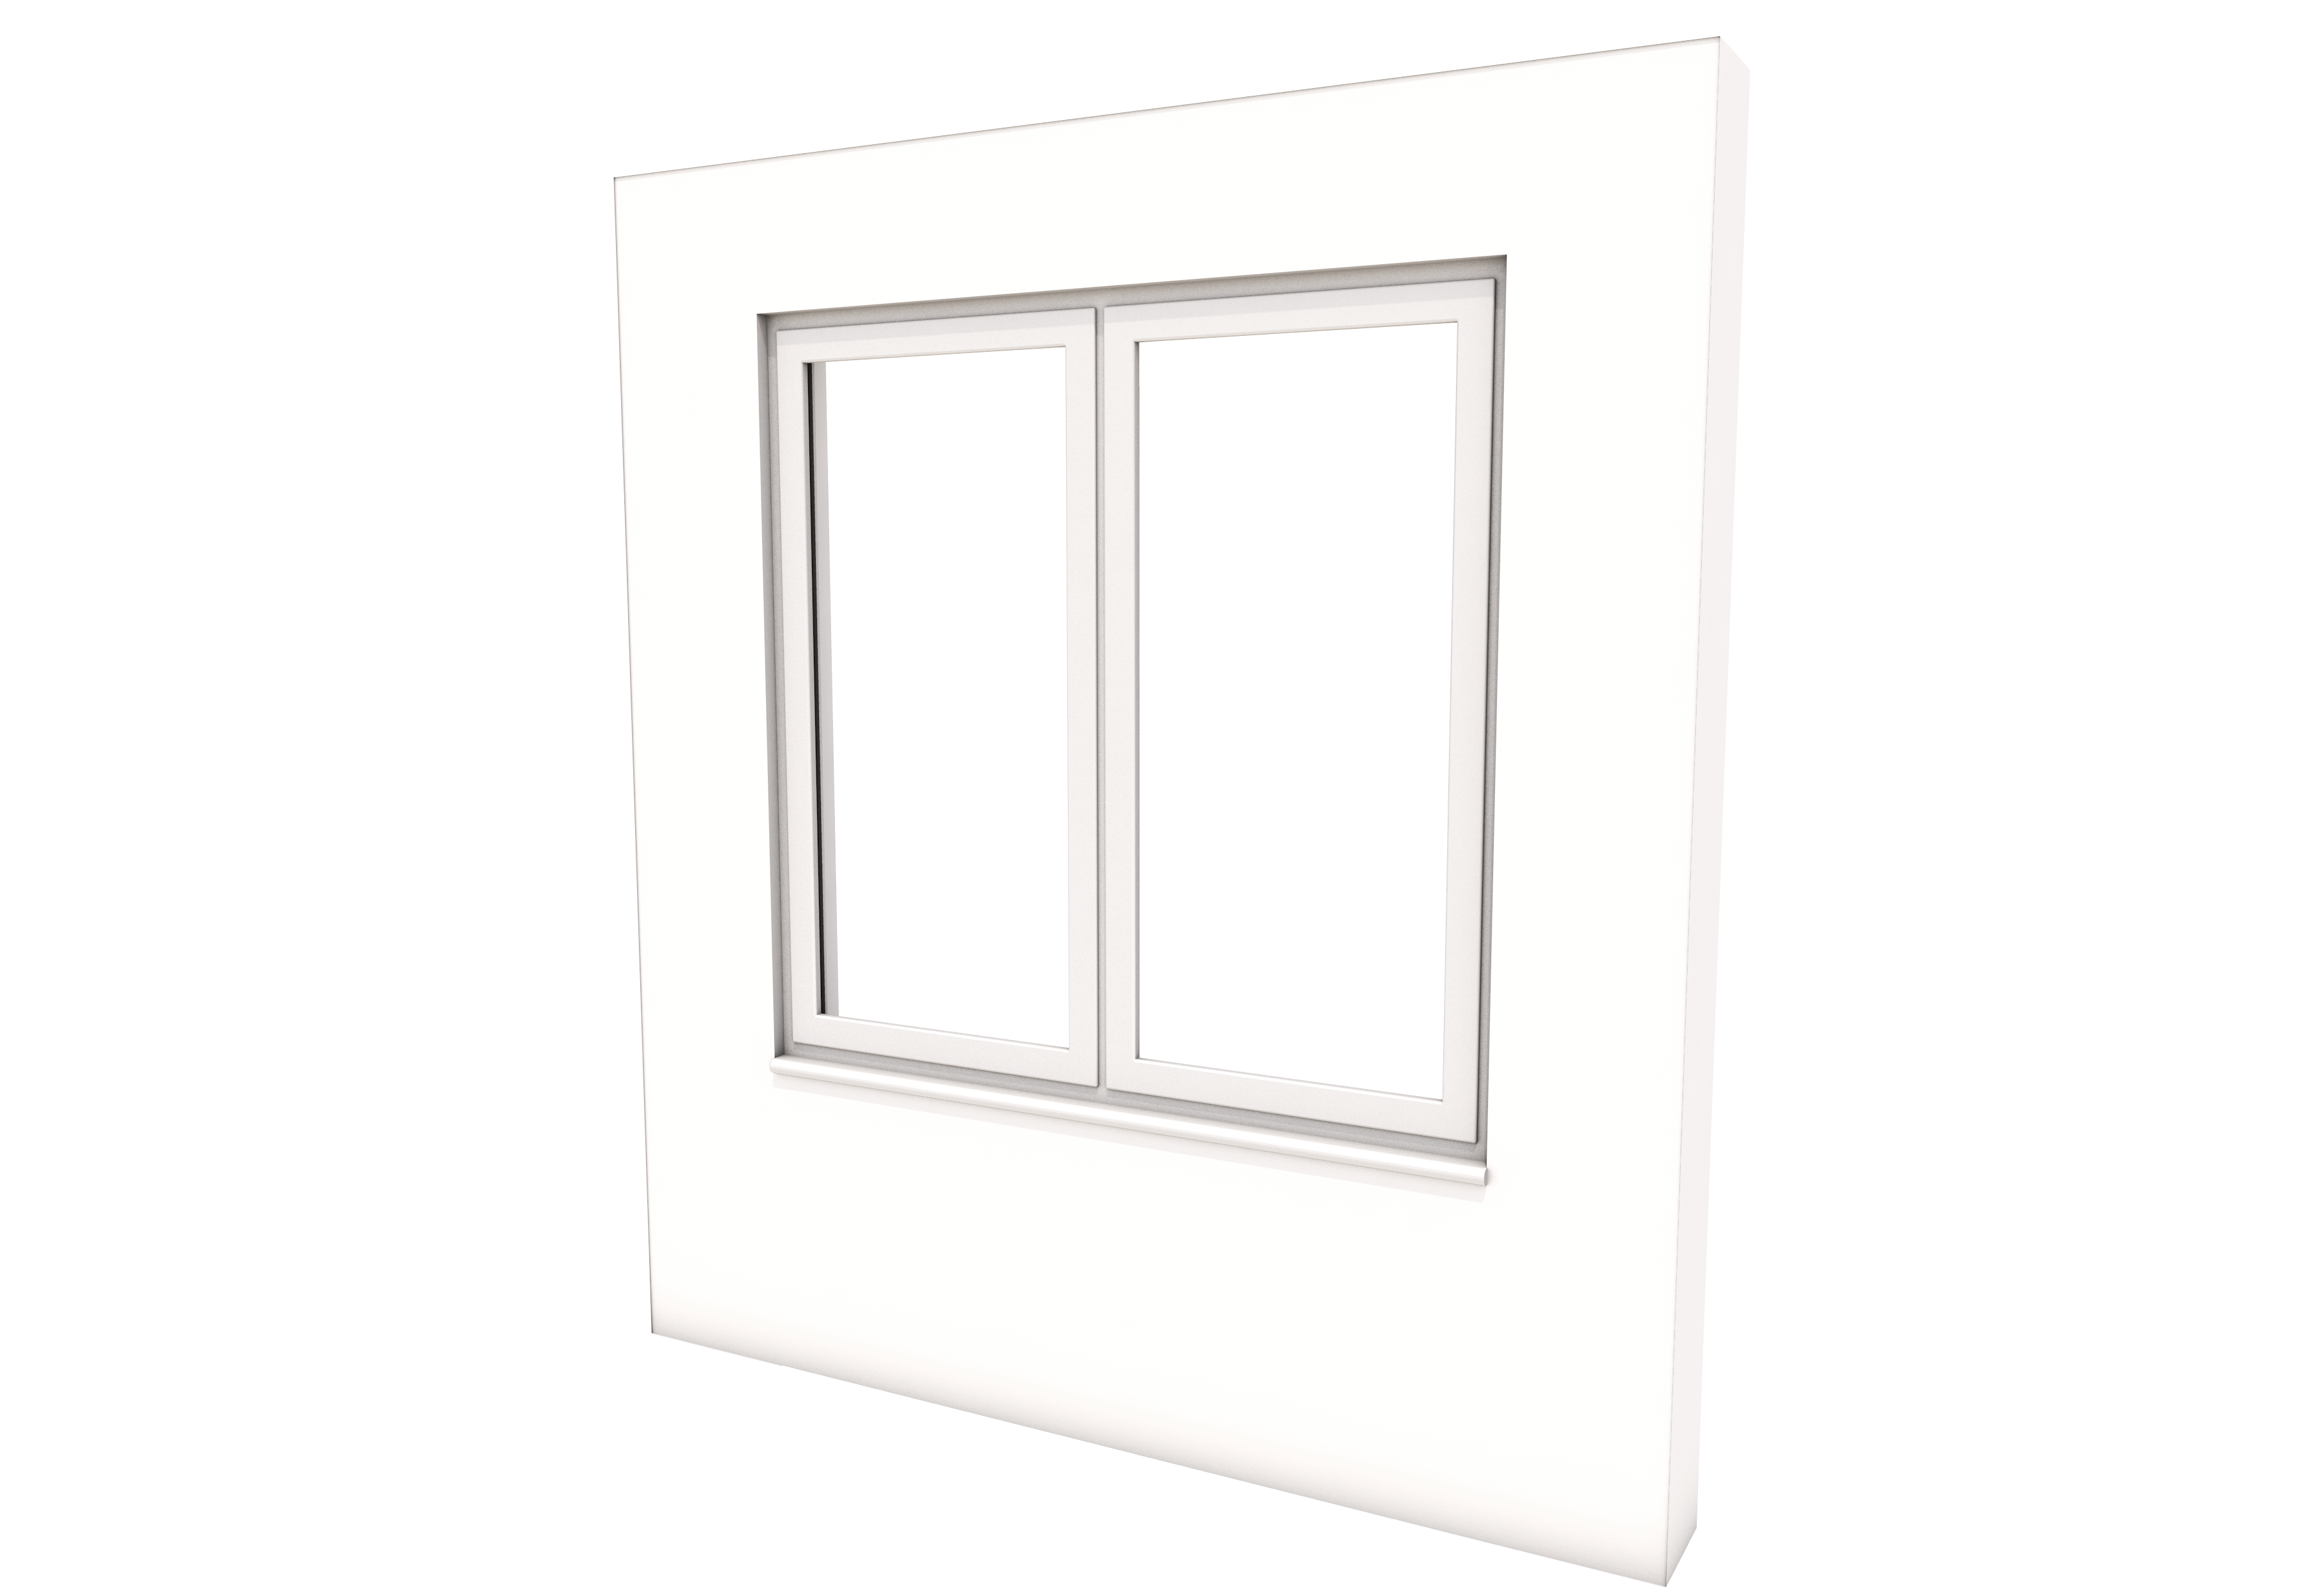 Smart Alitherm 300 Window - 1200 x 1200 mm - Both Opening